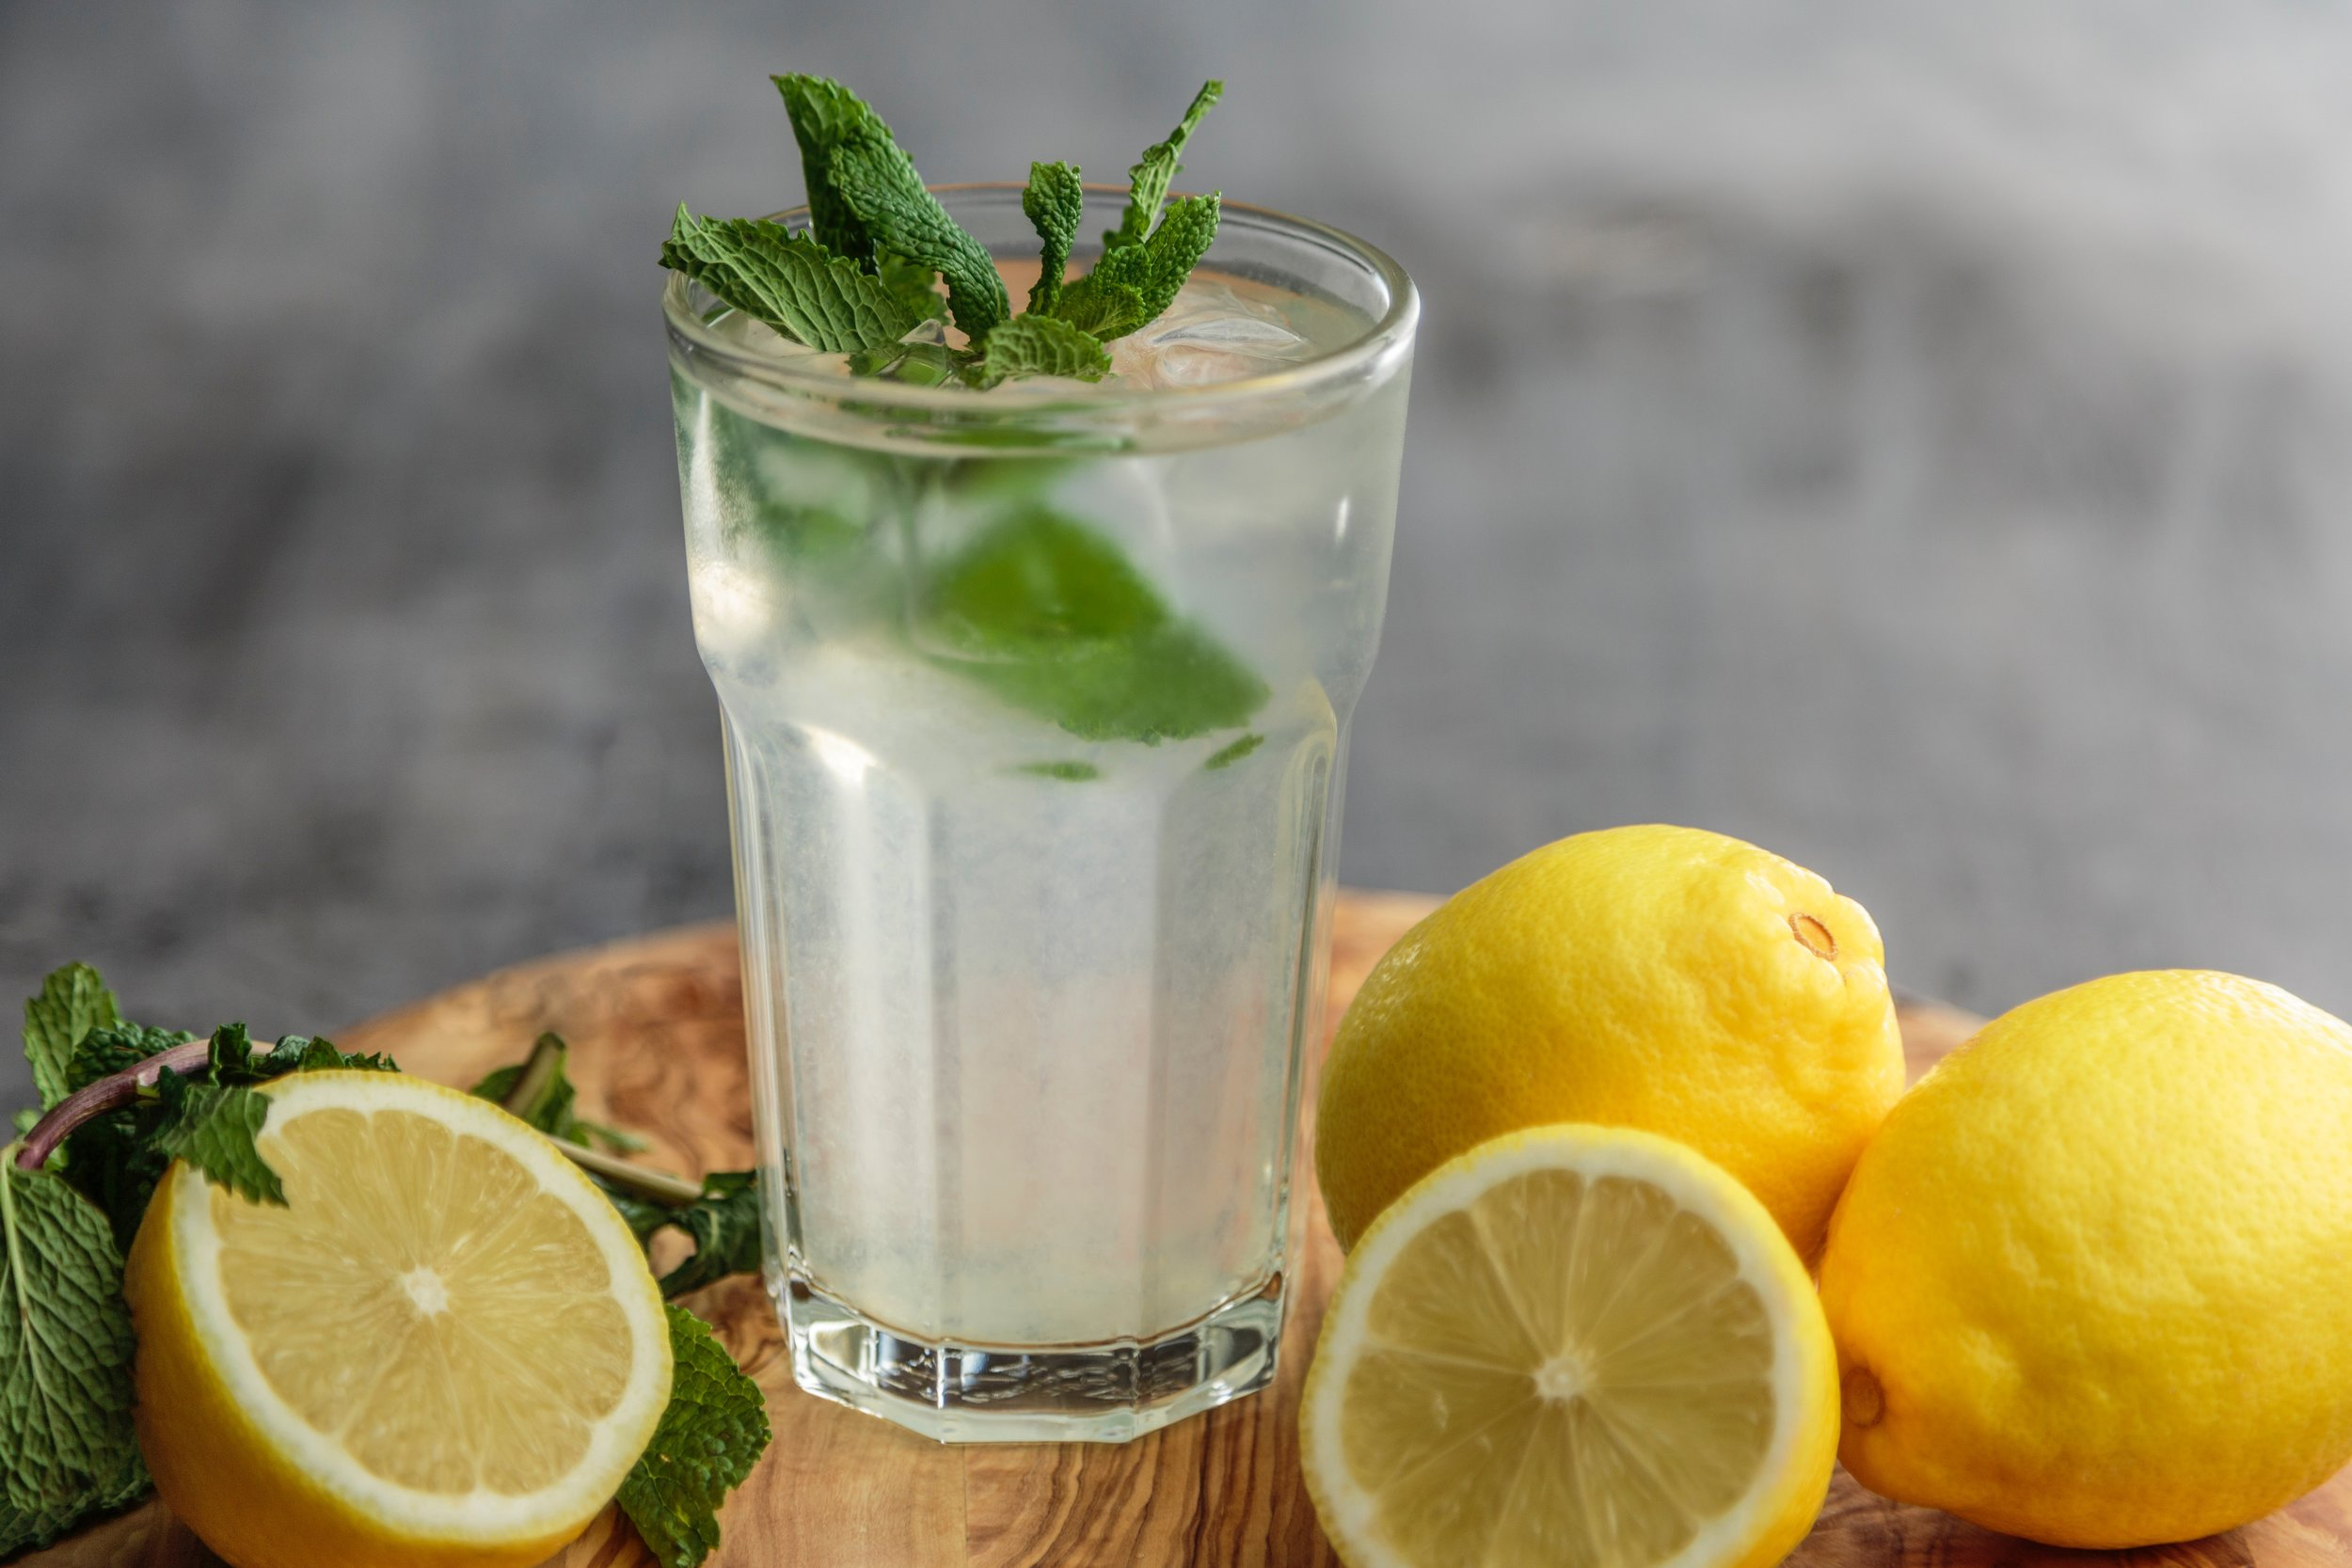 Lemon water is cleansing, alkalinizing and detoxifying.